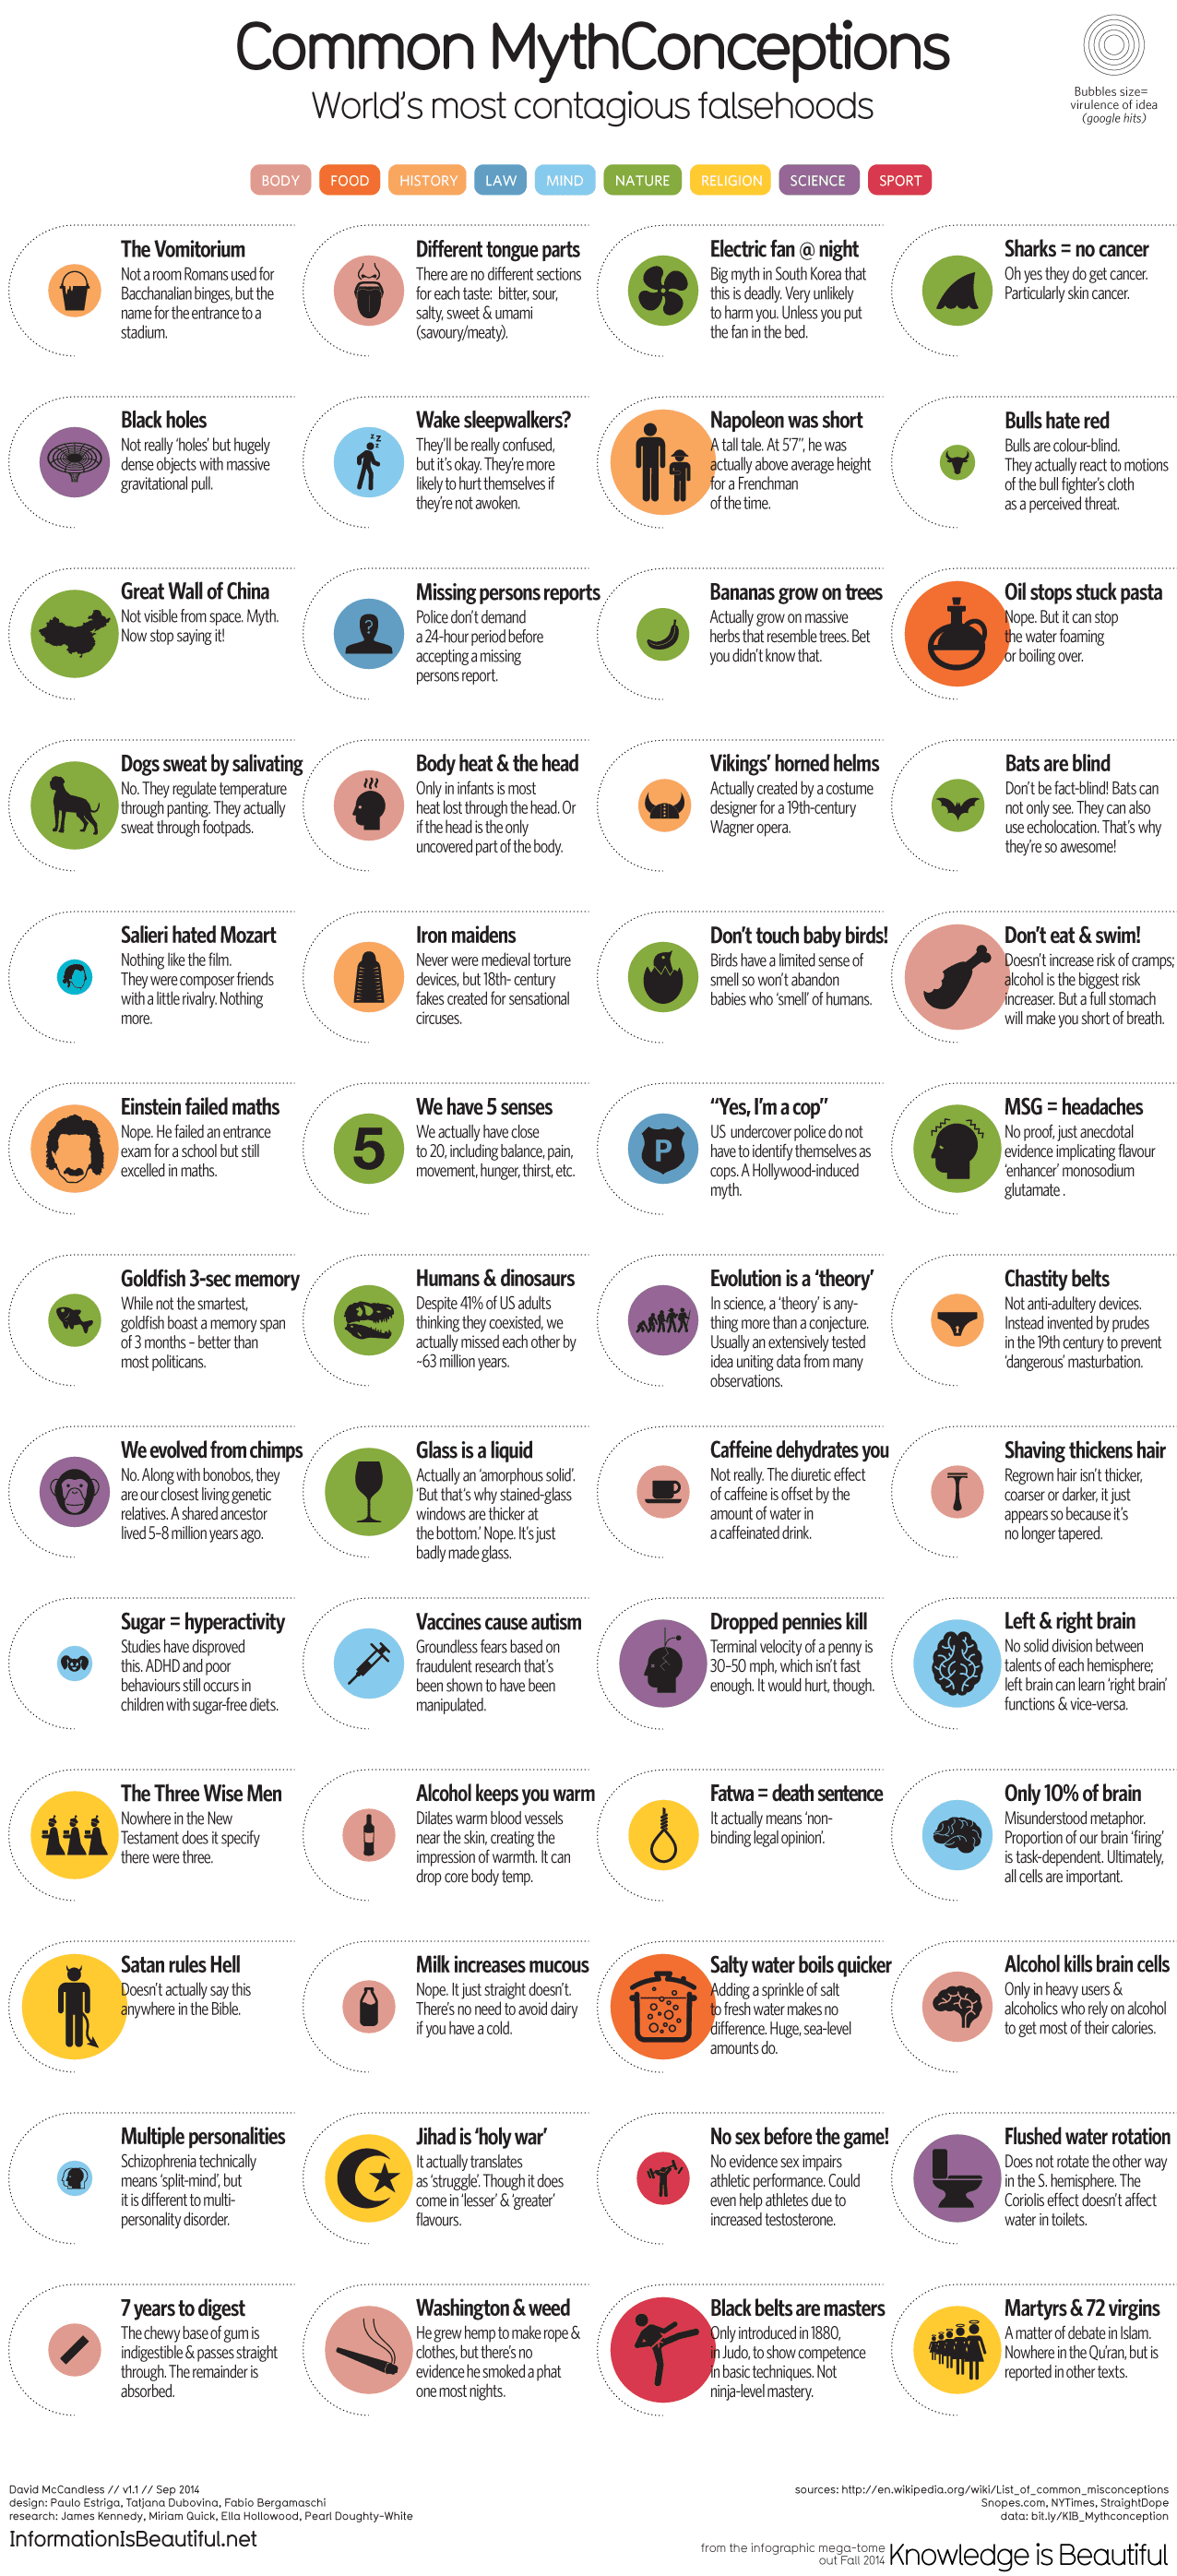 Infographic: Common MythConceptions: World's Most Contagious Falsehoods